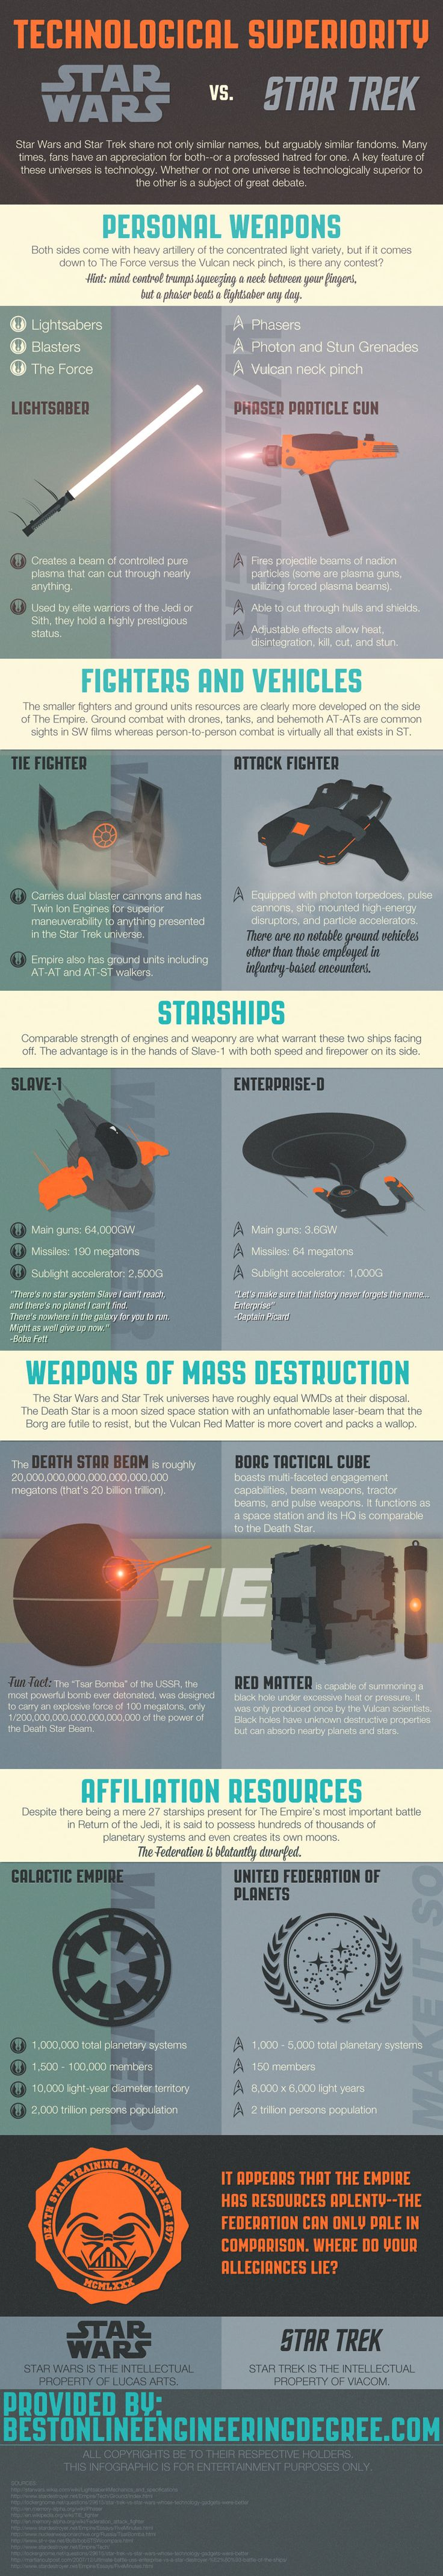 Star Trek and Star Wars: The Battle For Technological Supremacy #infographic